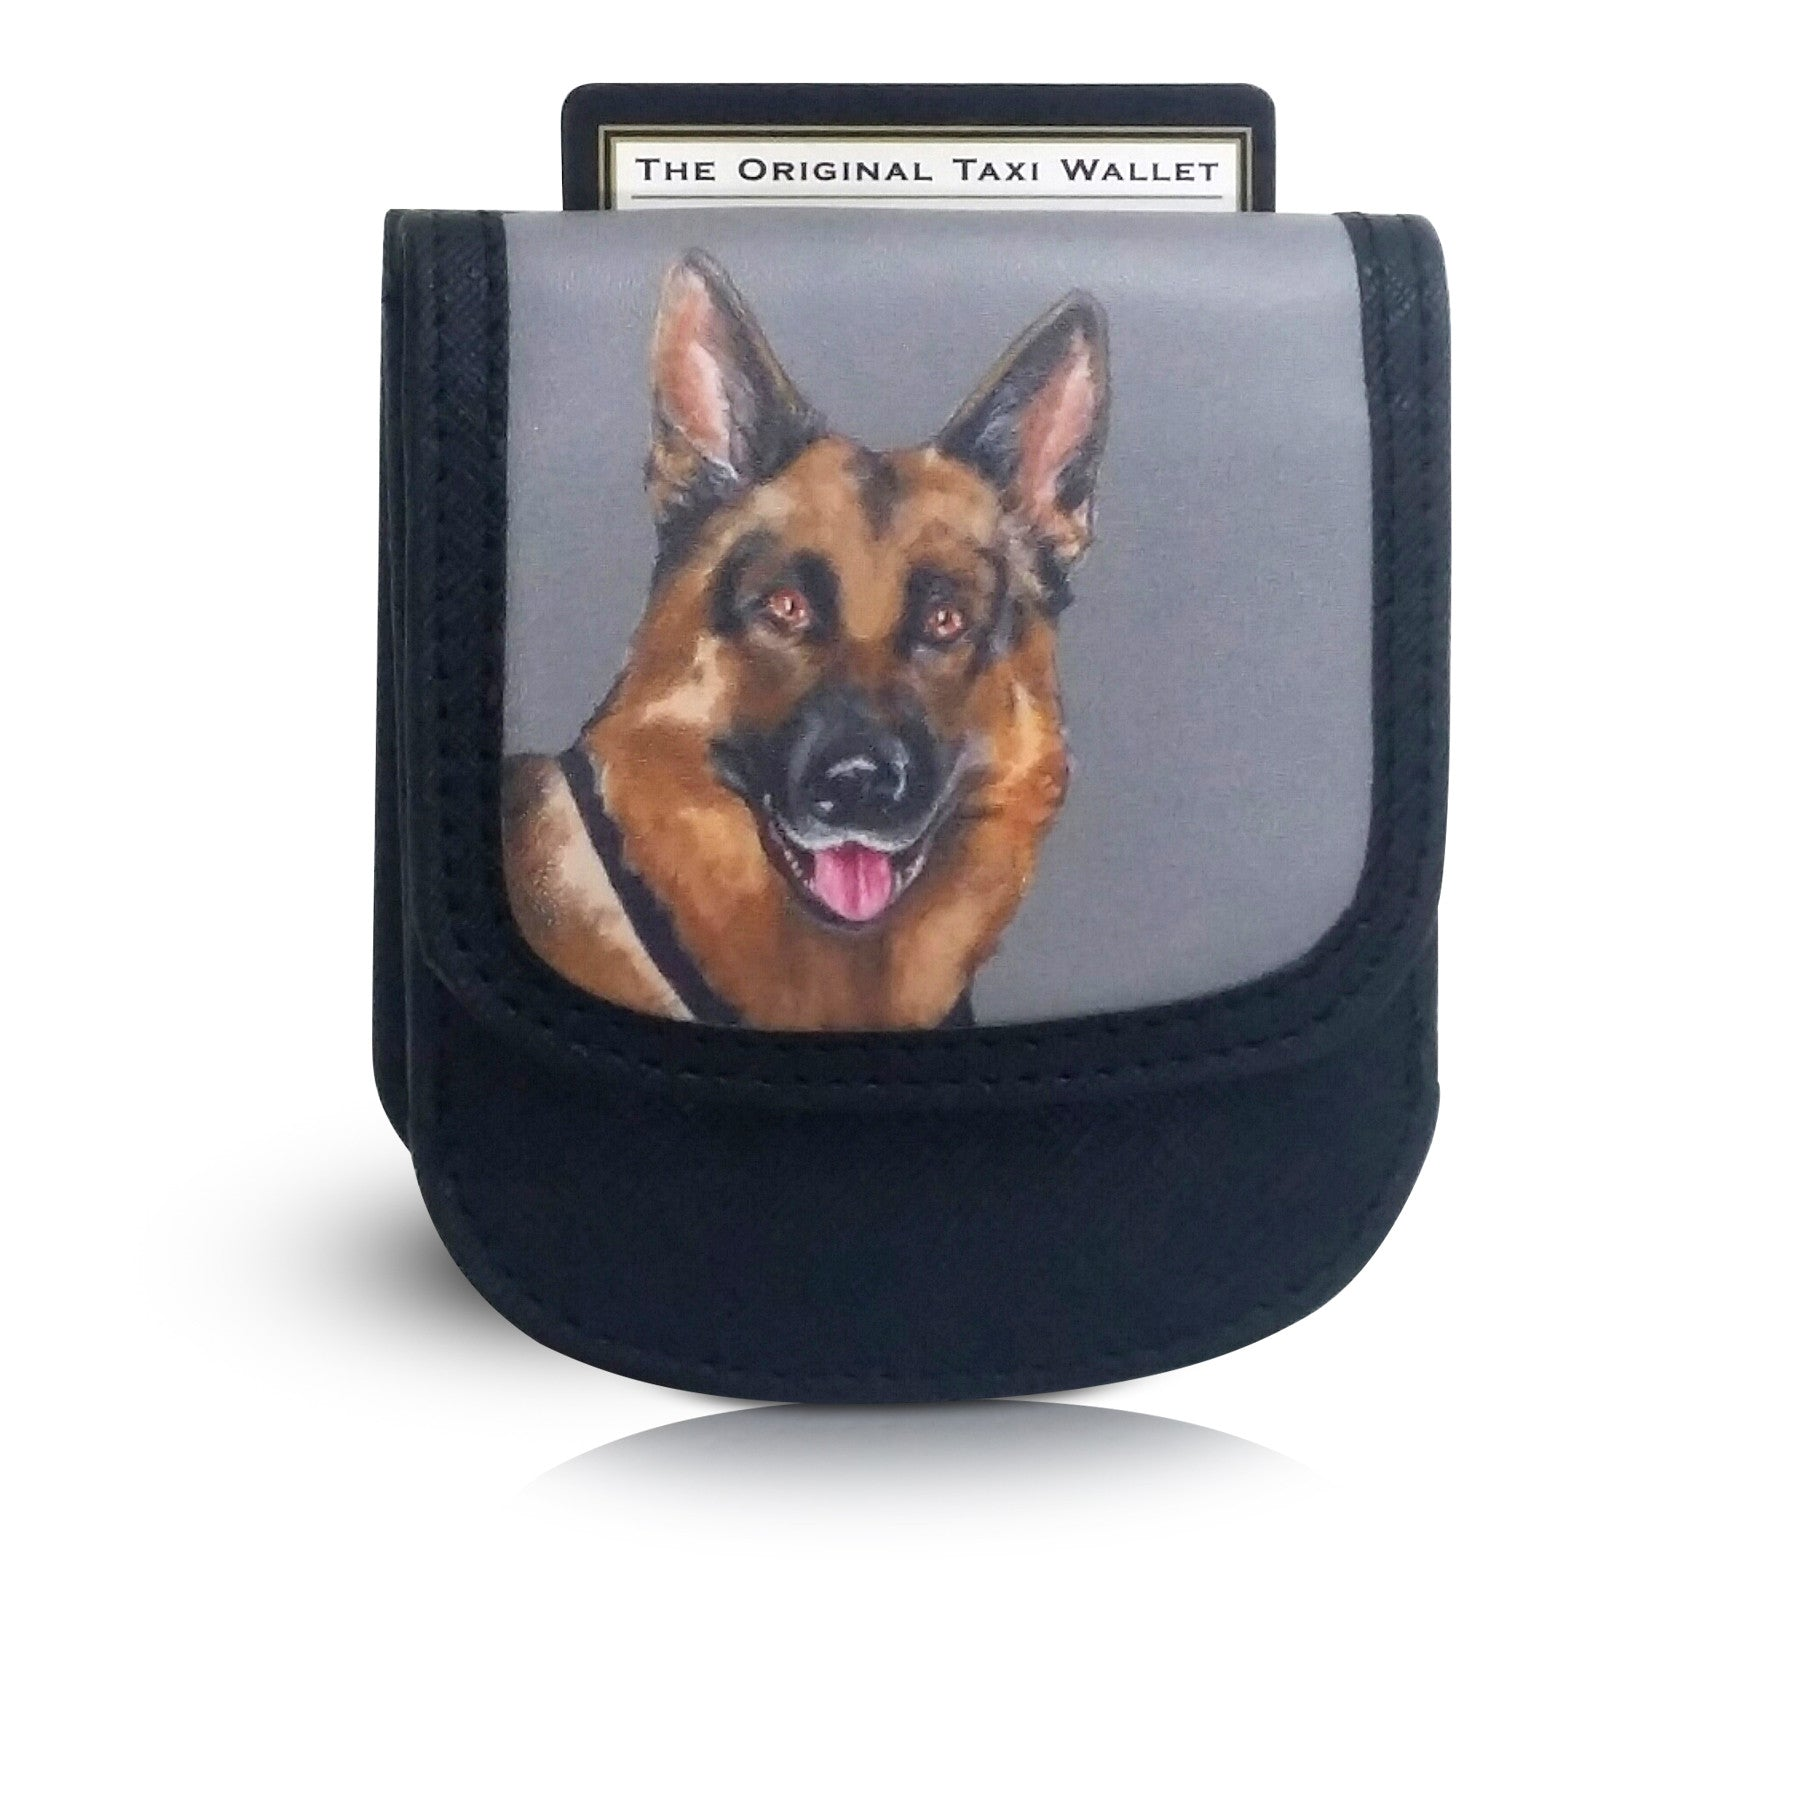 GERMAN SHEPHERD - Vegan Non-Leather. RFID. Compact Taxi Wallet.